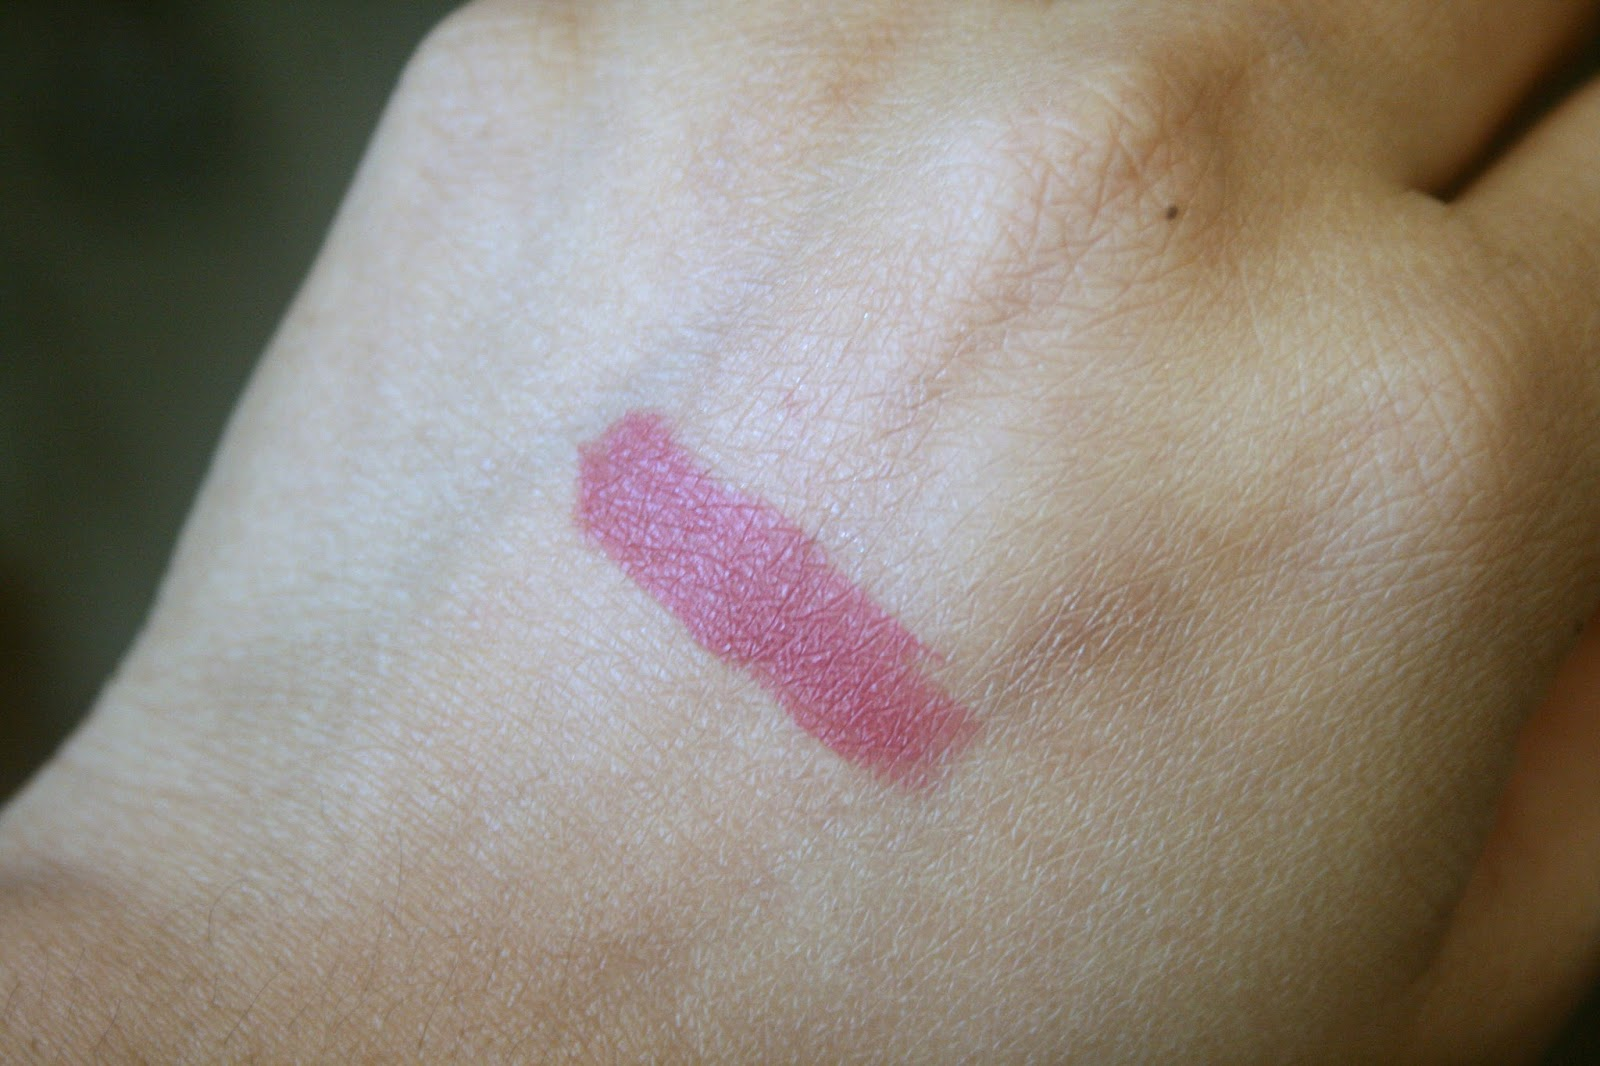 Marc Jacobs Beauty Le Marc Lip Creme in Kiss Kiss Bang Bang Swatch